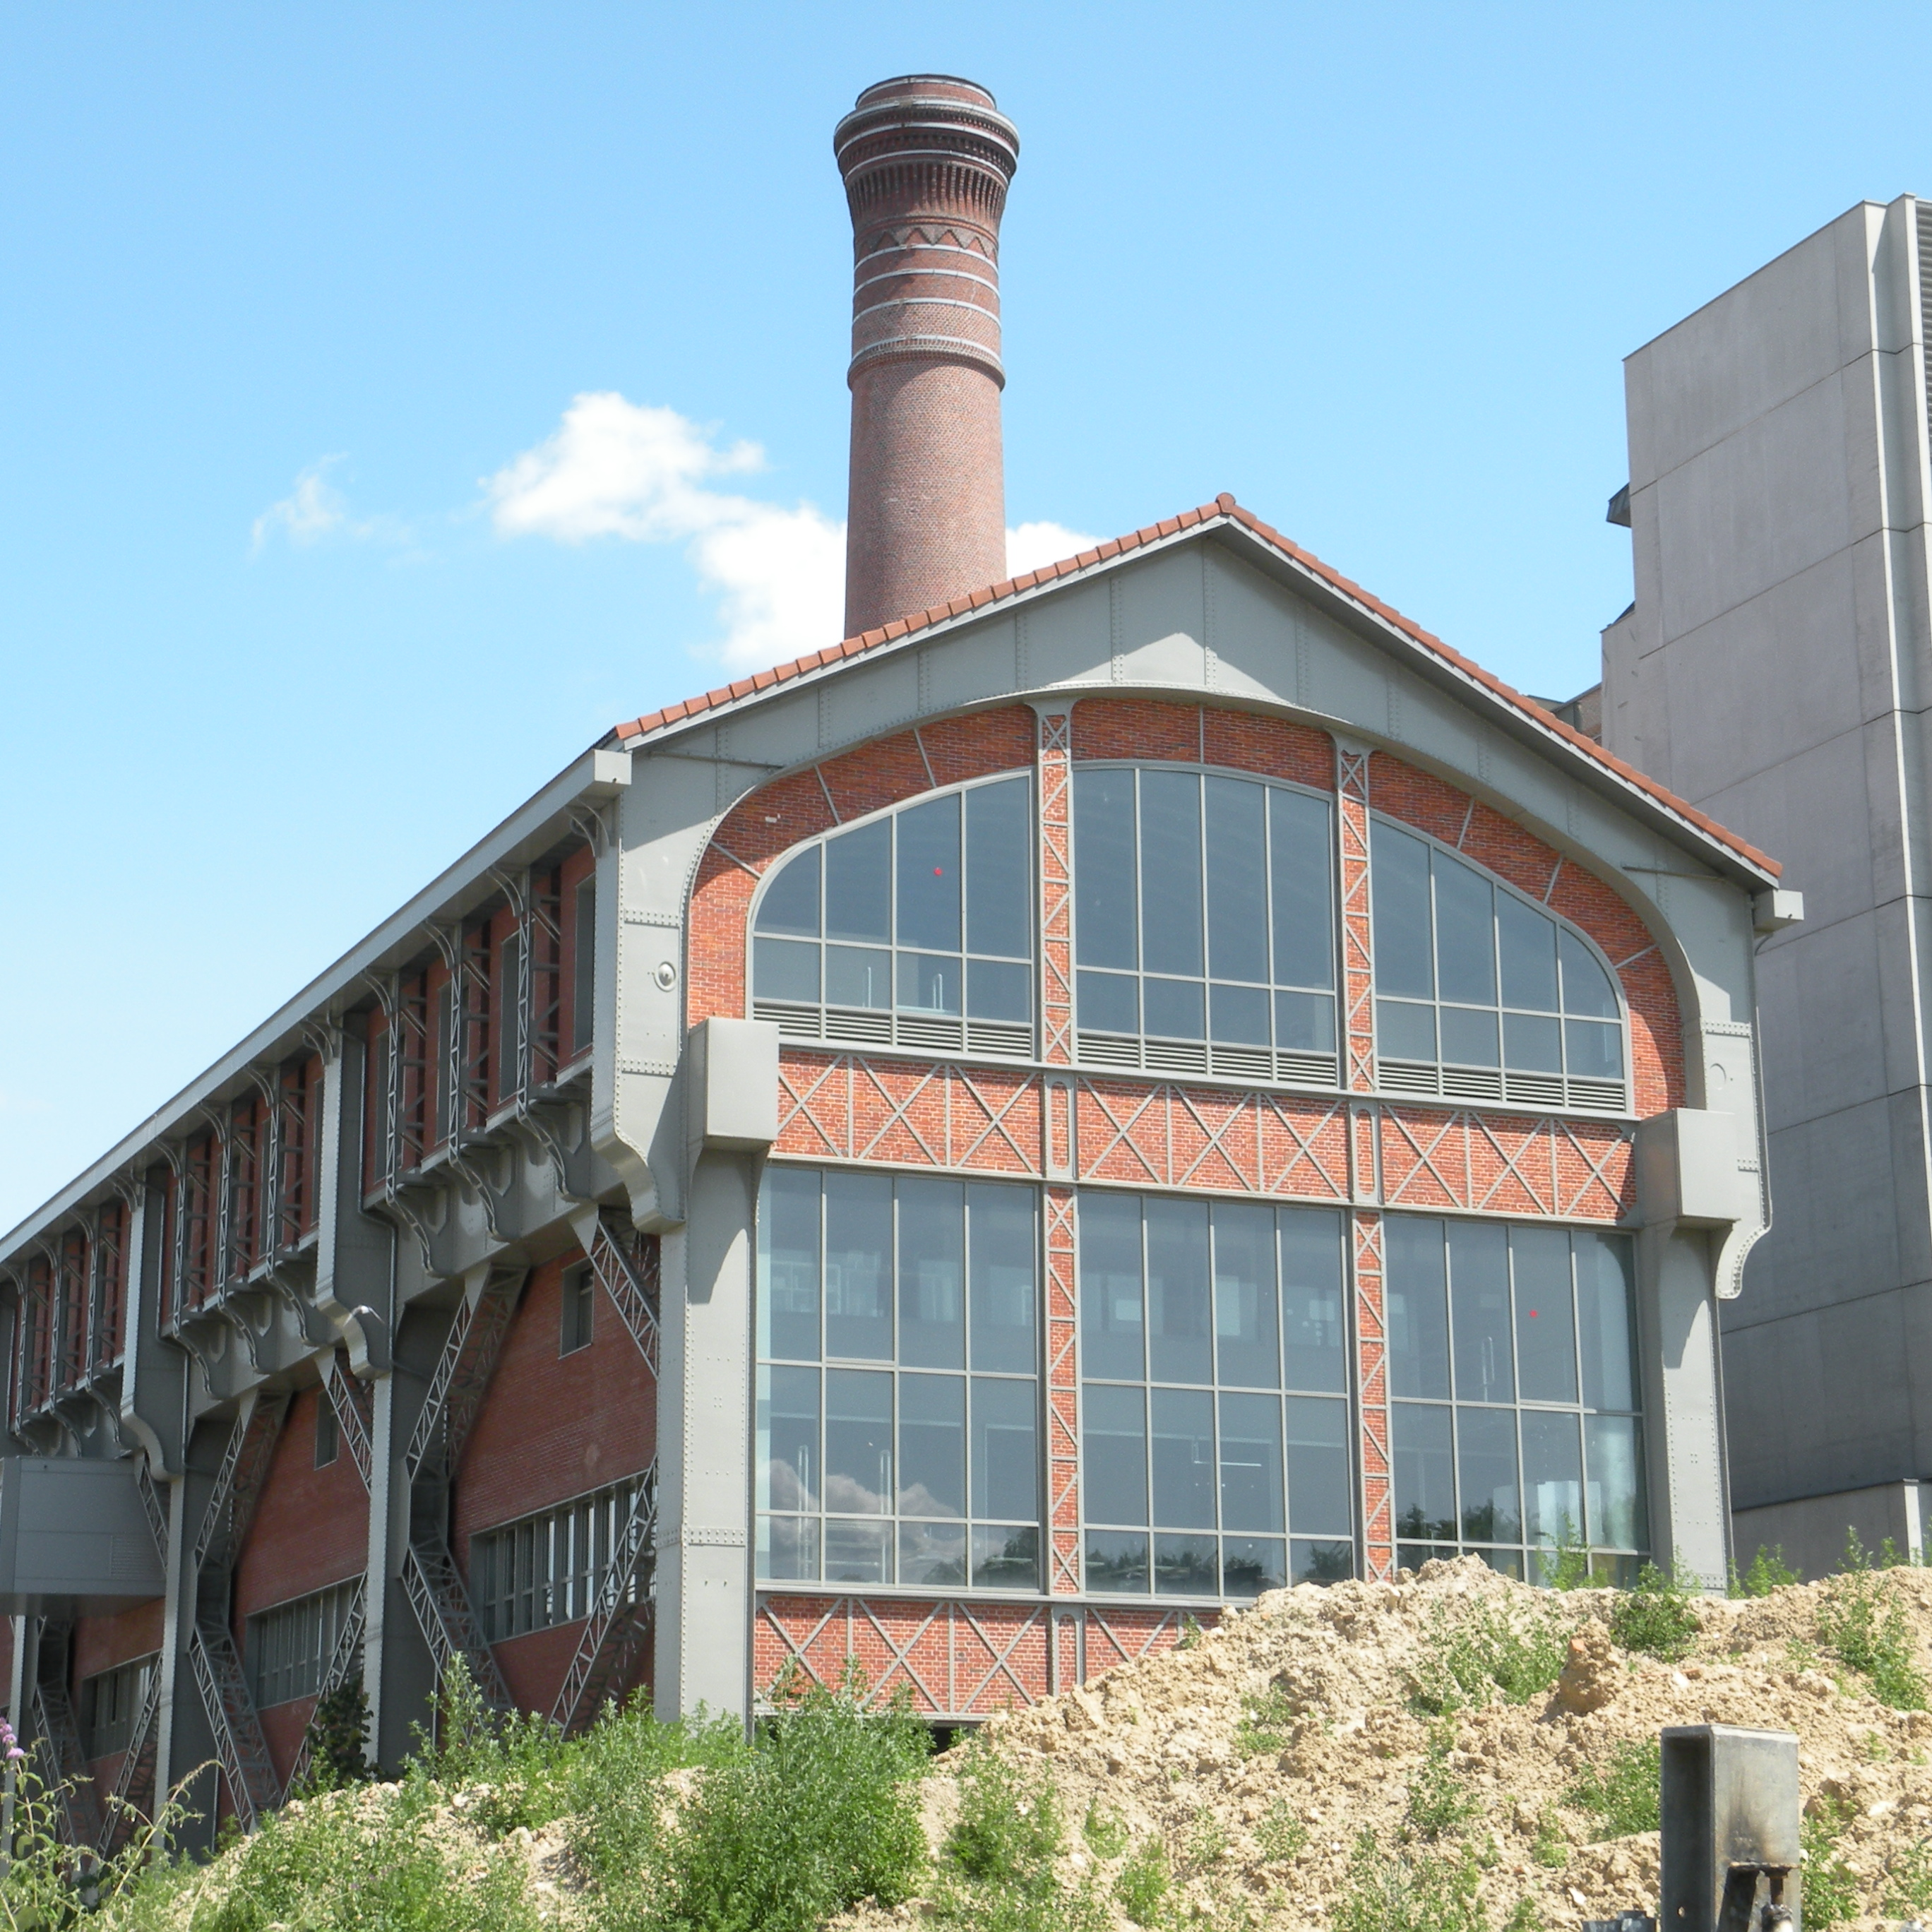 File paris13 usine air comprim jpg wikimedia commons - Usine a vendre paris ...